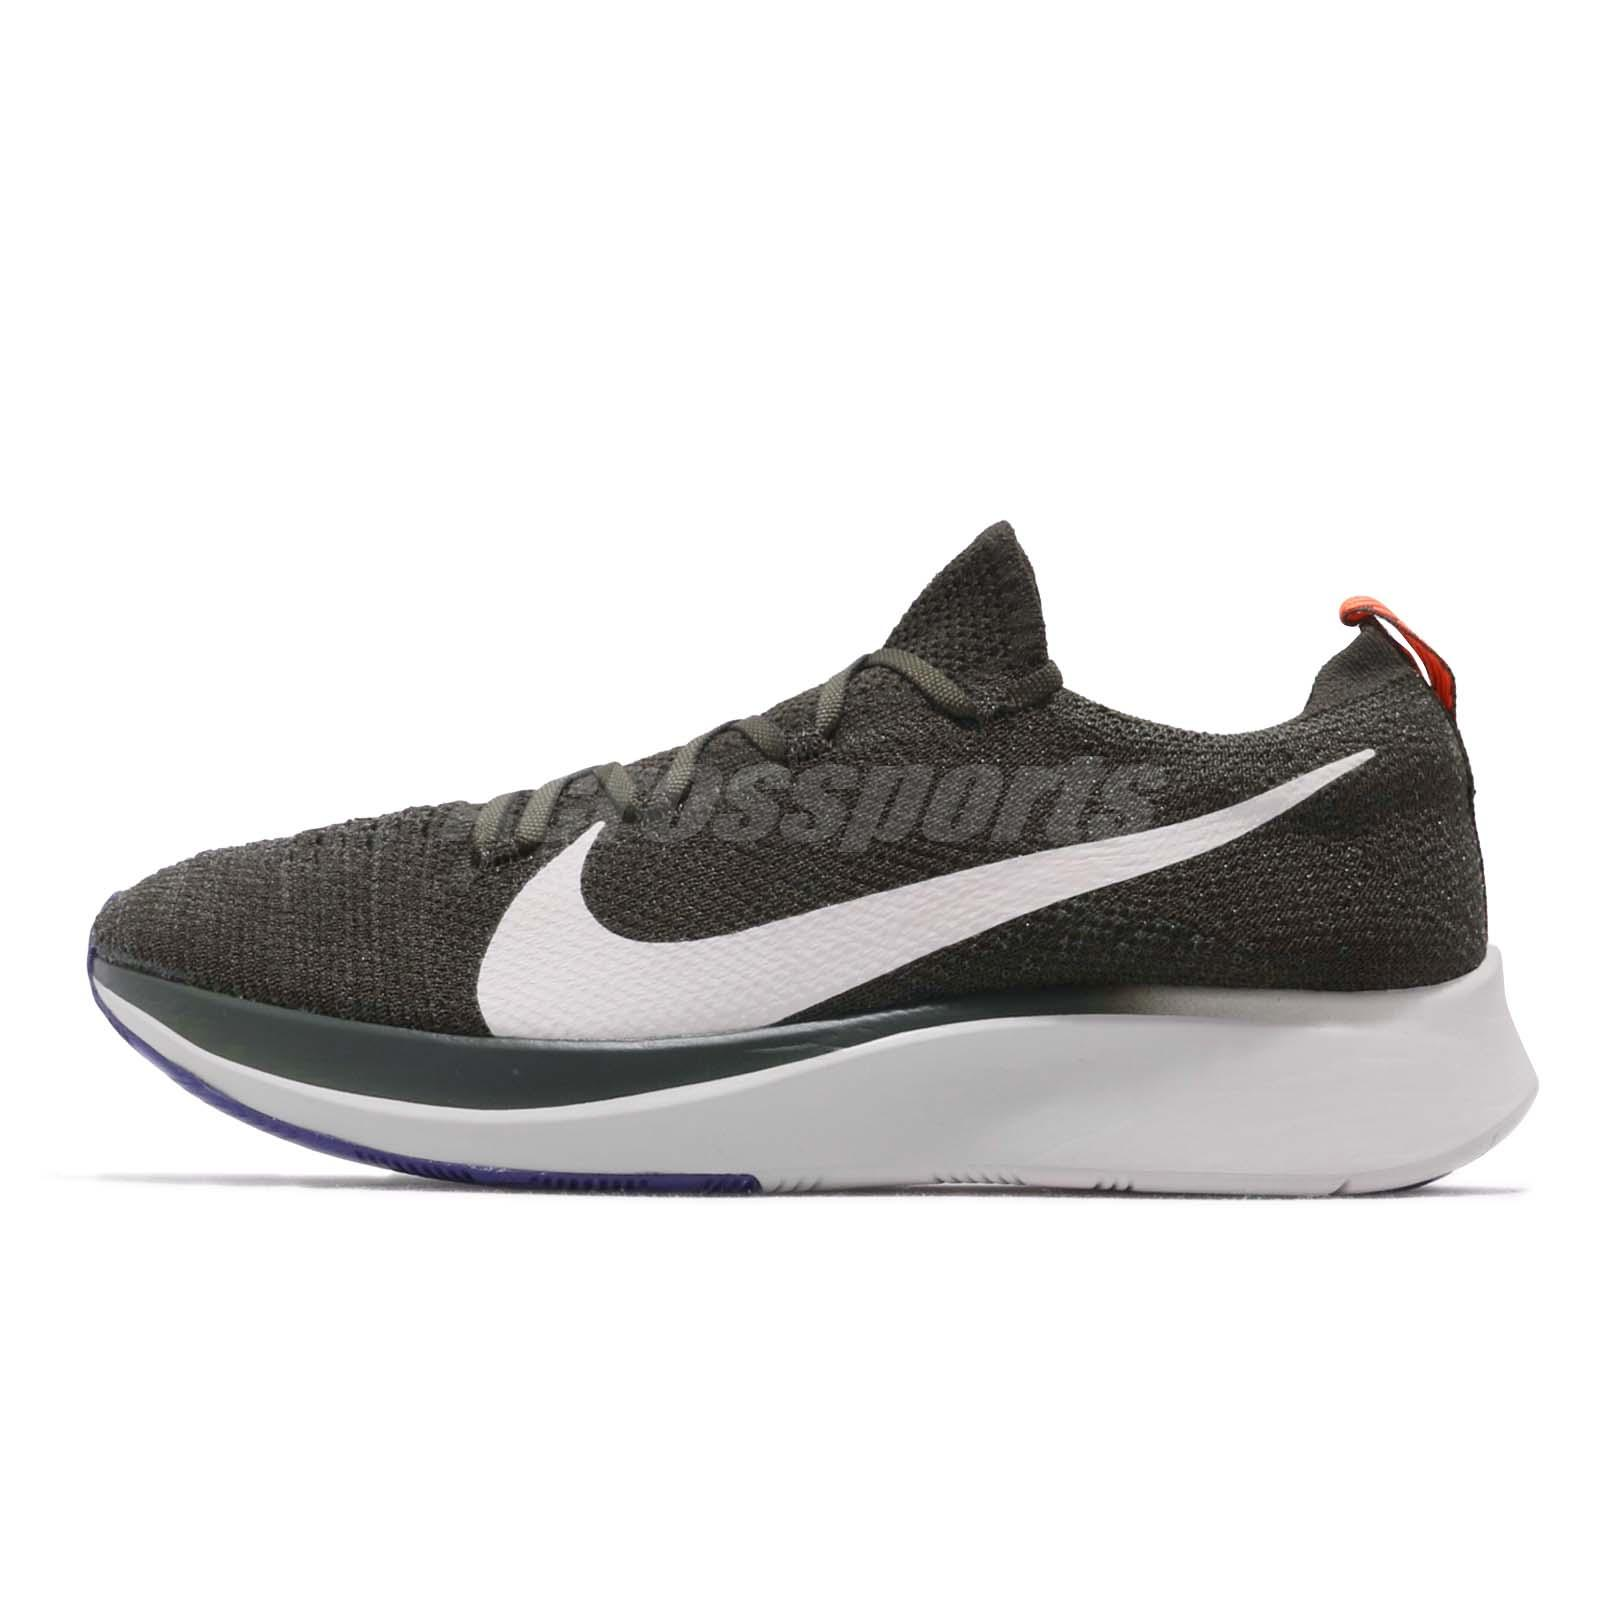 new arrivals 90b7c 1feb9 Nike Zoom Fly Flyknit Sequoia Summit White Men Running Shoes Sneakers  AR4561-303